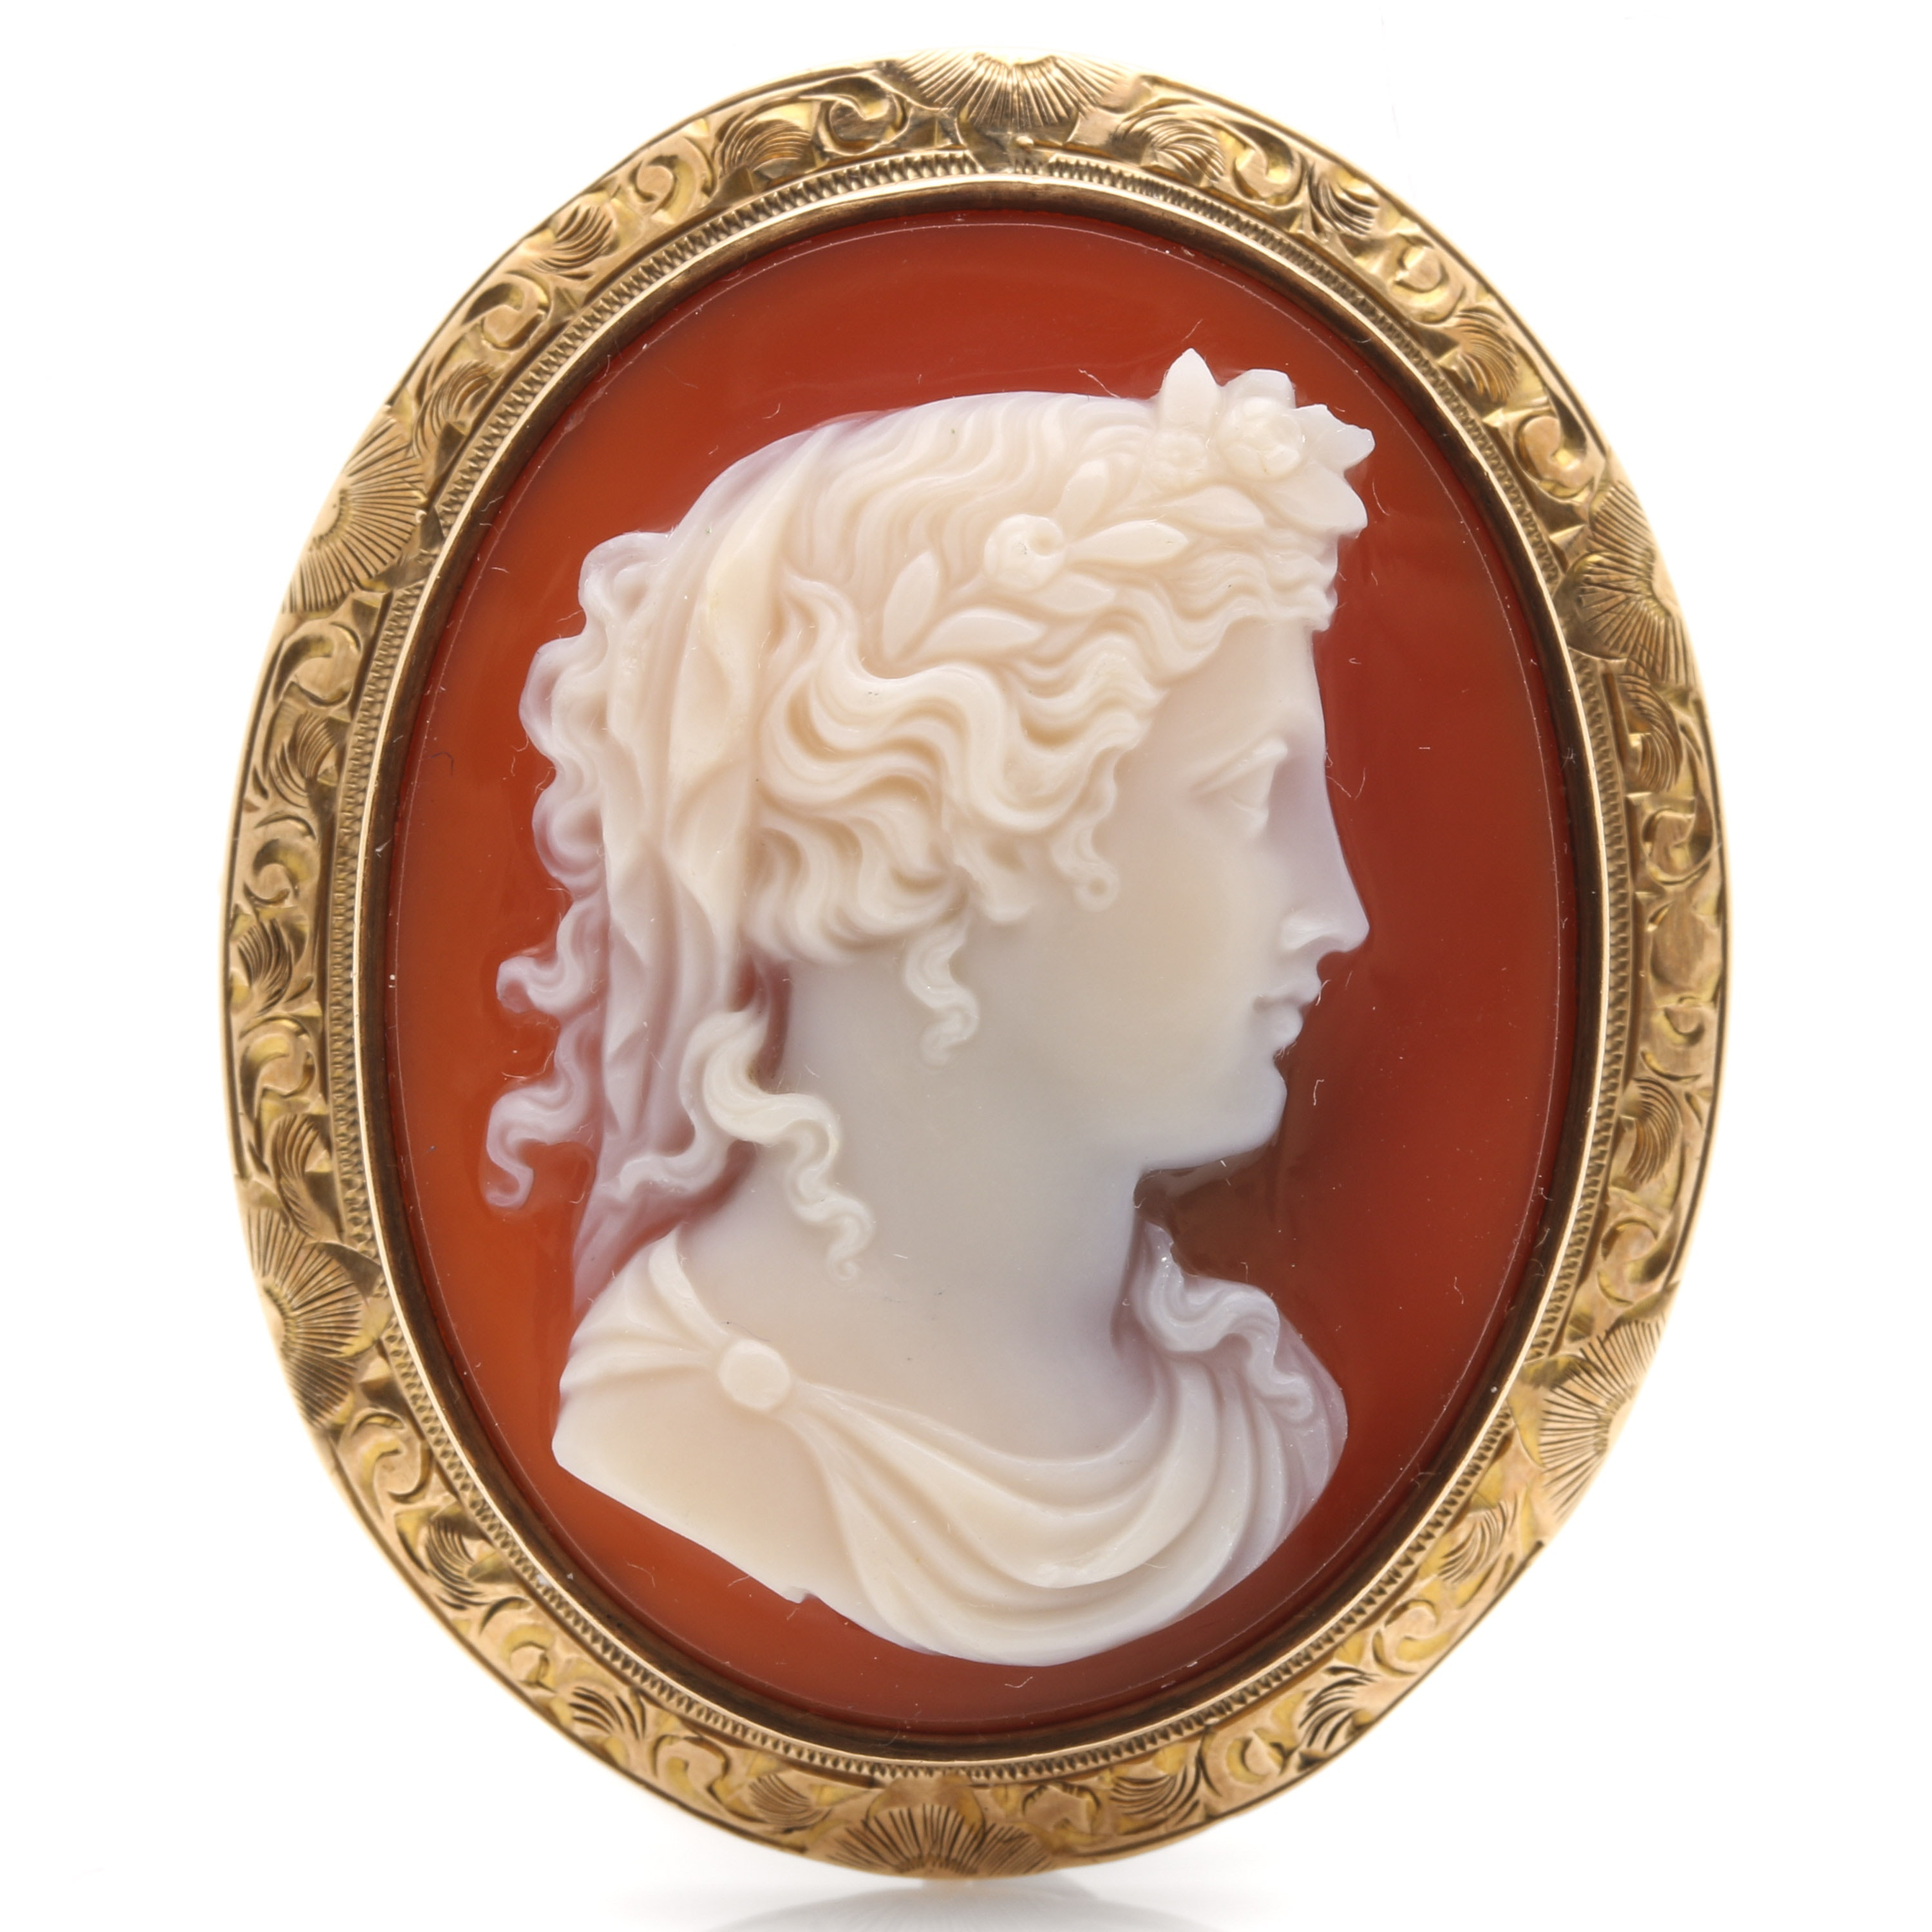 10K Yellow Gold Agate Cameo Brooch